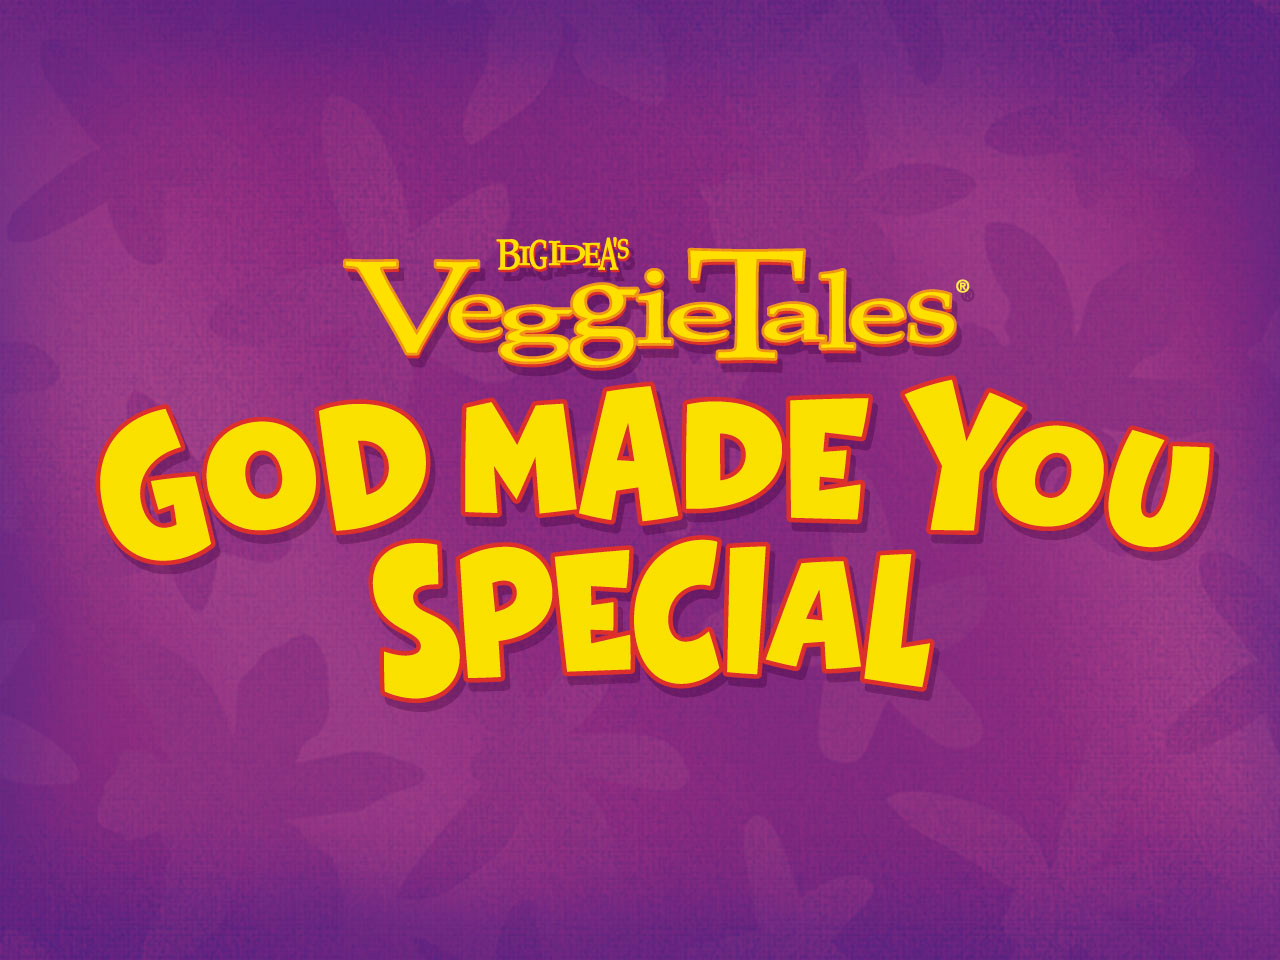 God Made You Special/Credits